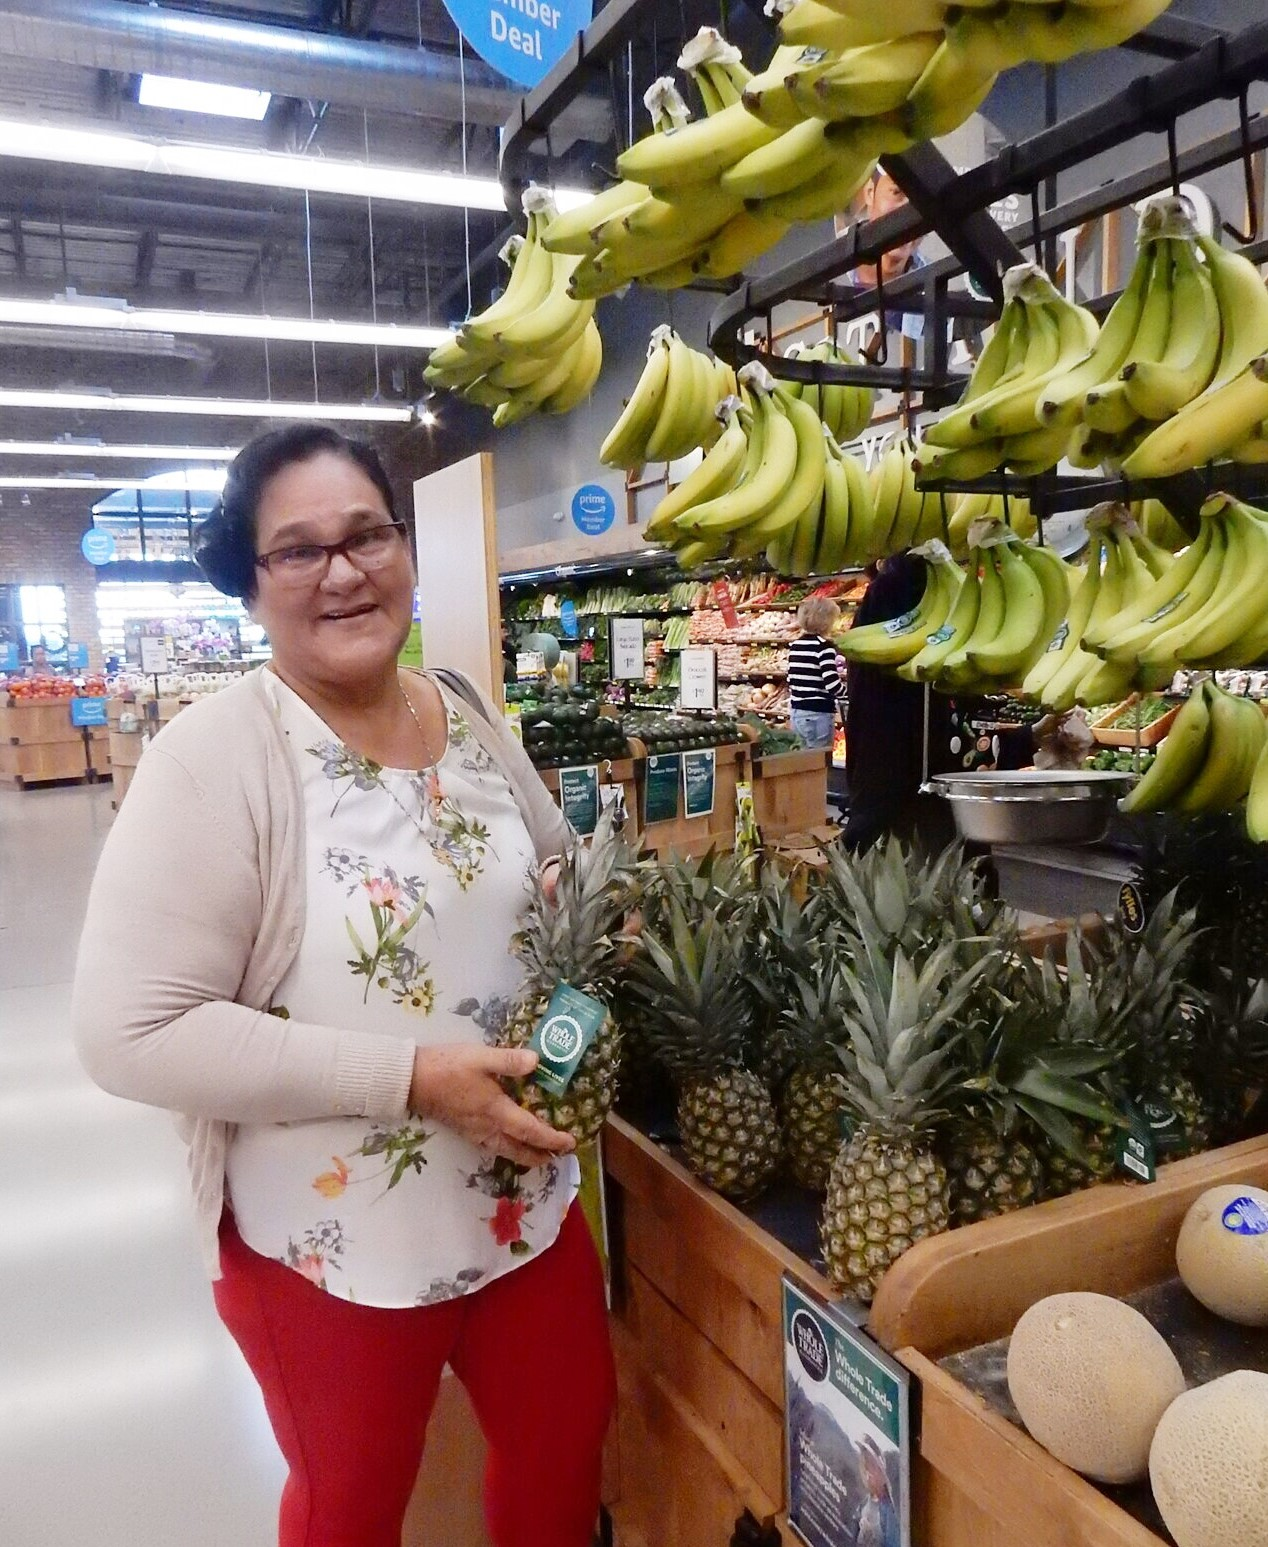 Erlinda checks out pineapples in a supermarket in New York.